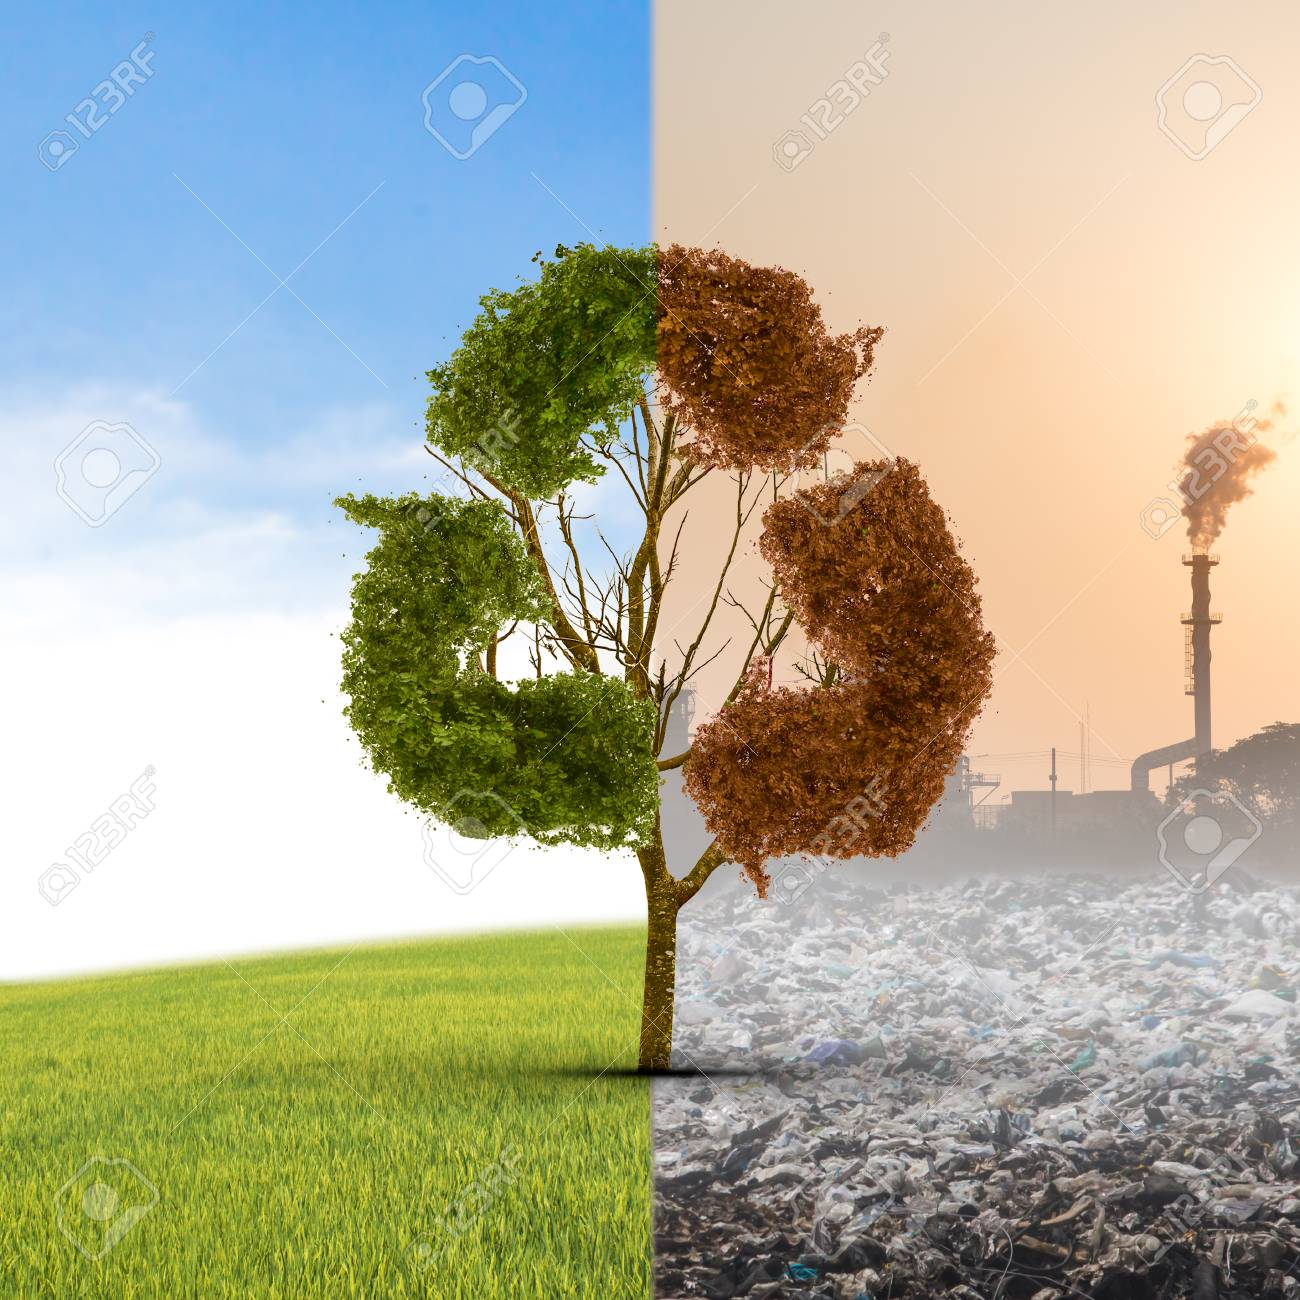 The Concept Of Climate Has Changed Half Alive And Half Dead Stock